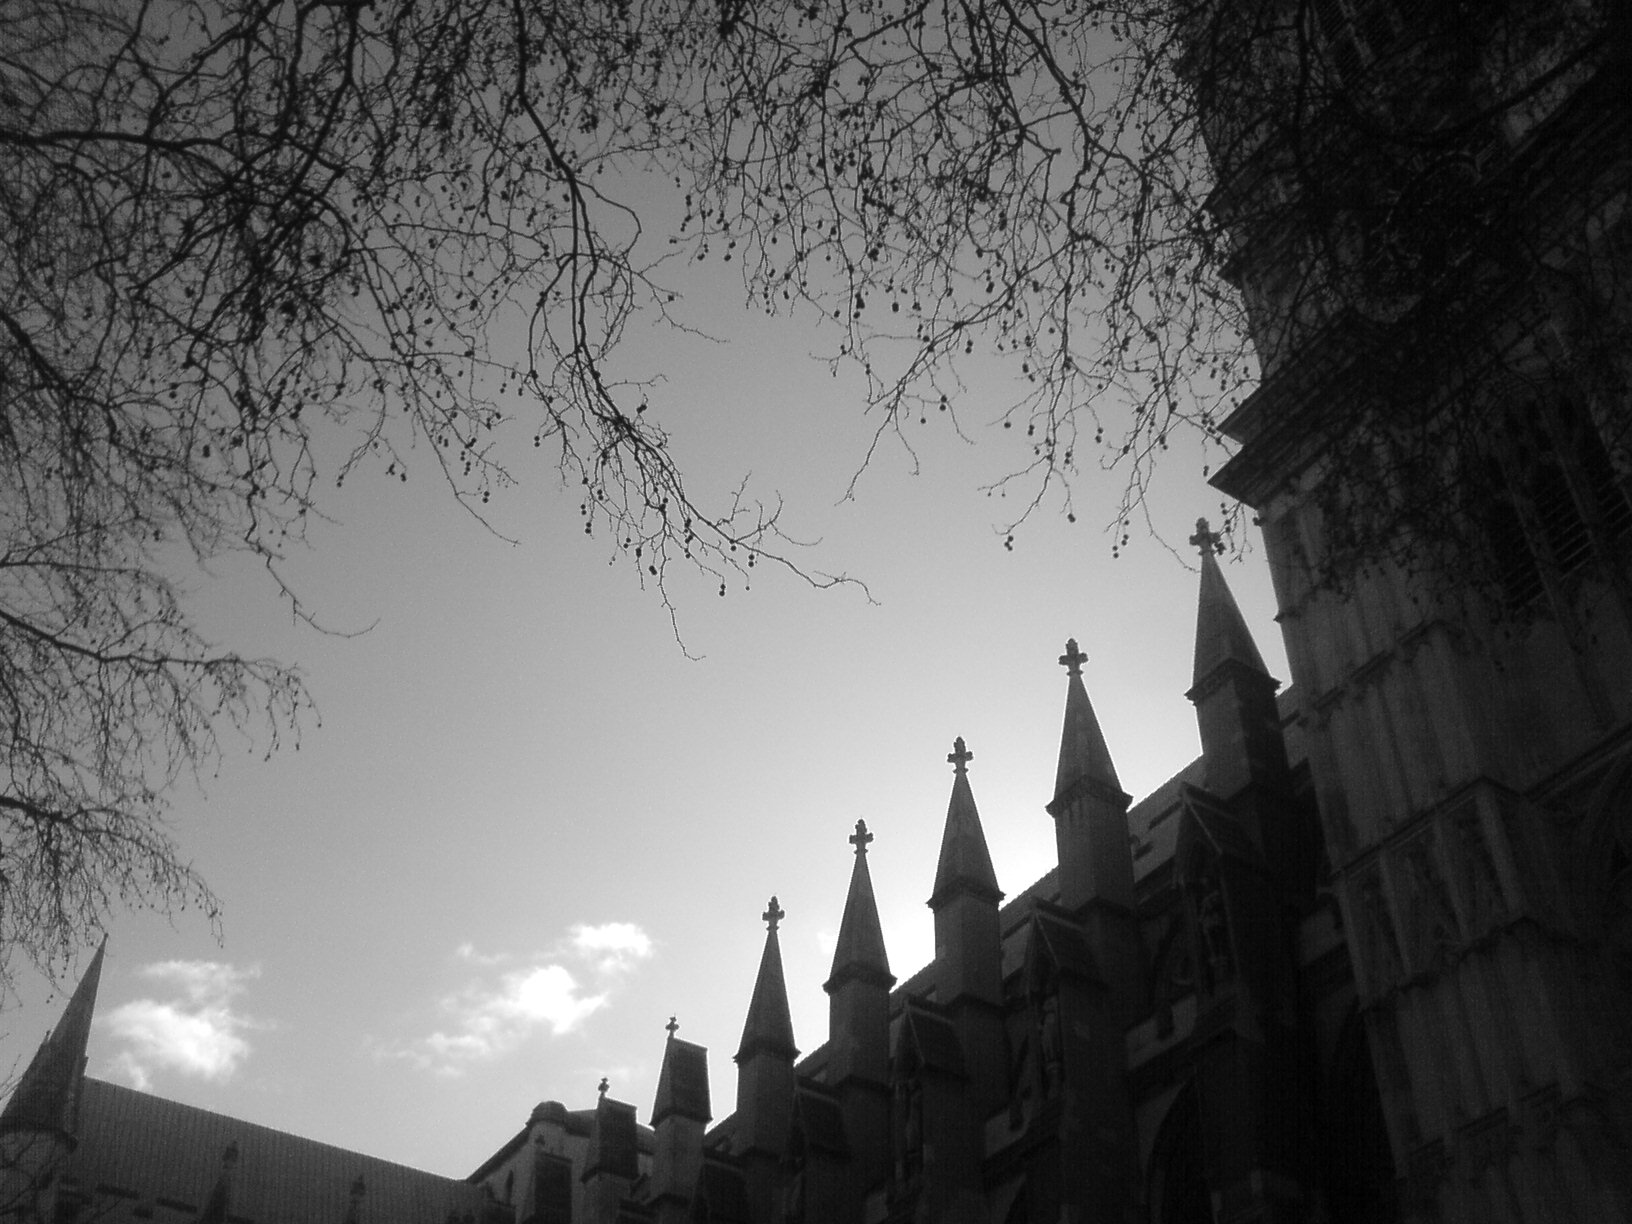 silhouettes - Westminster Palace, Westminster Abbey and Saint Margaret's Church - United Kingdom of Great Britain and Northern Ireland Cathrin Eszbach